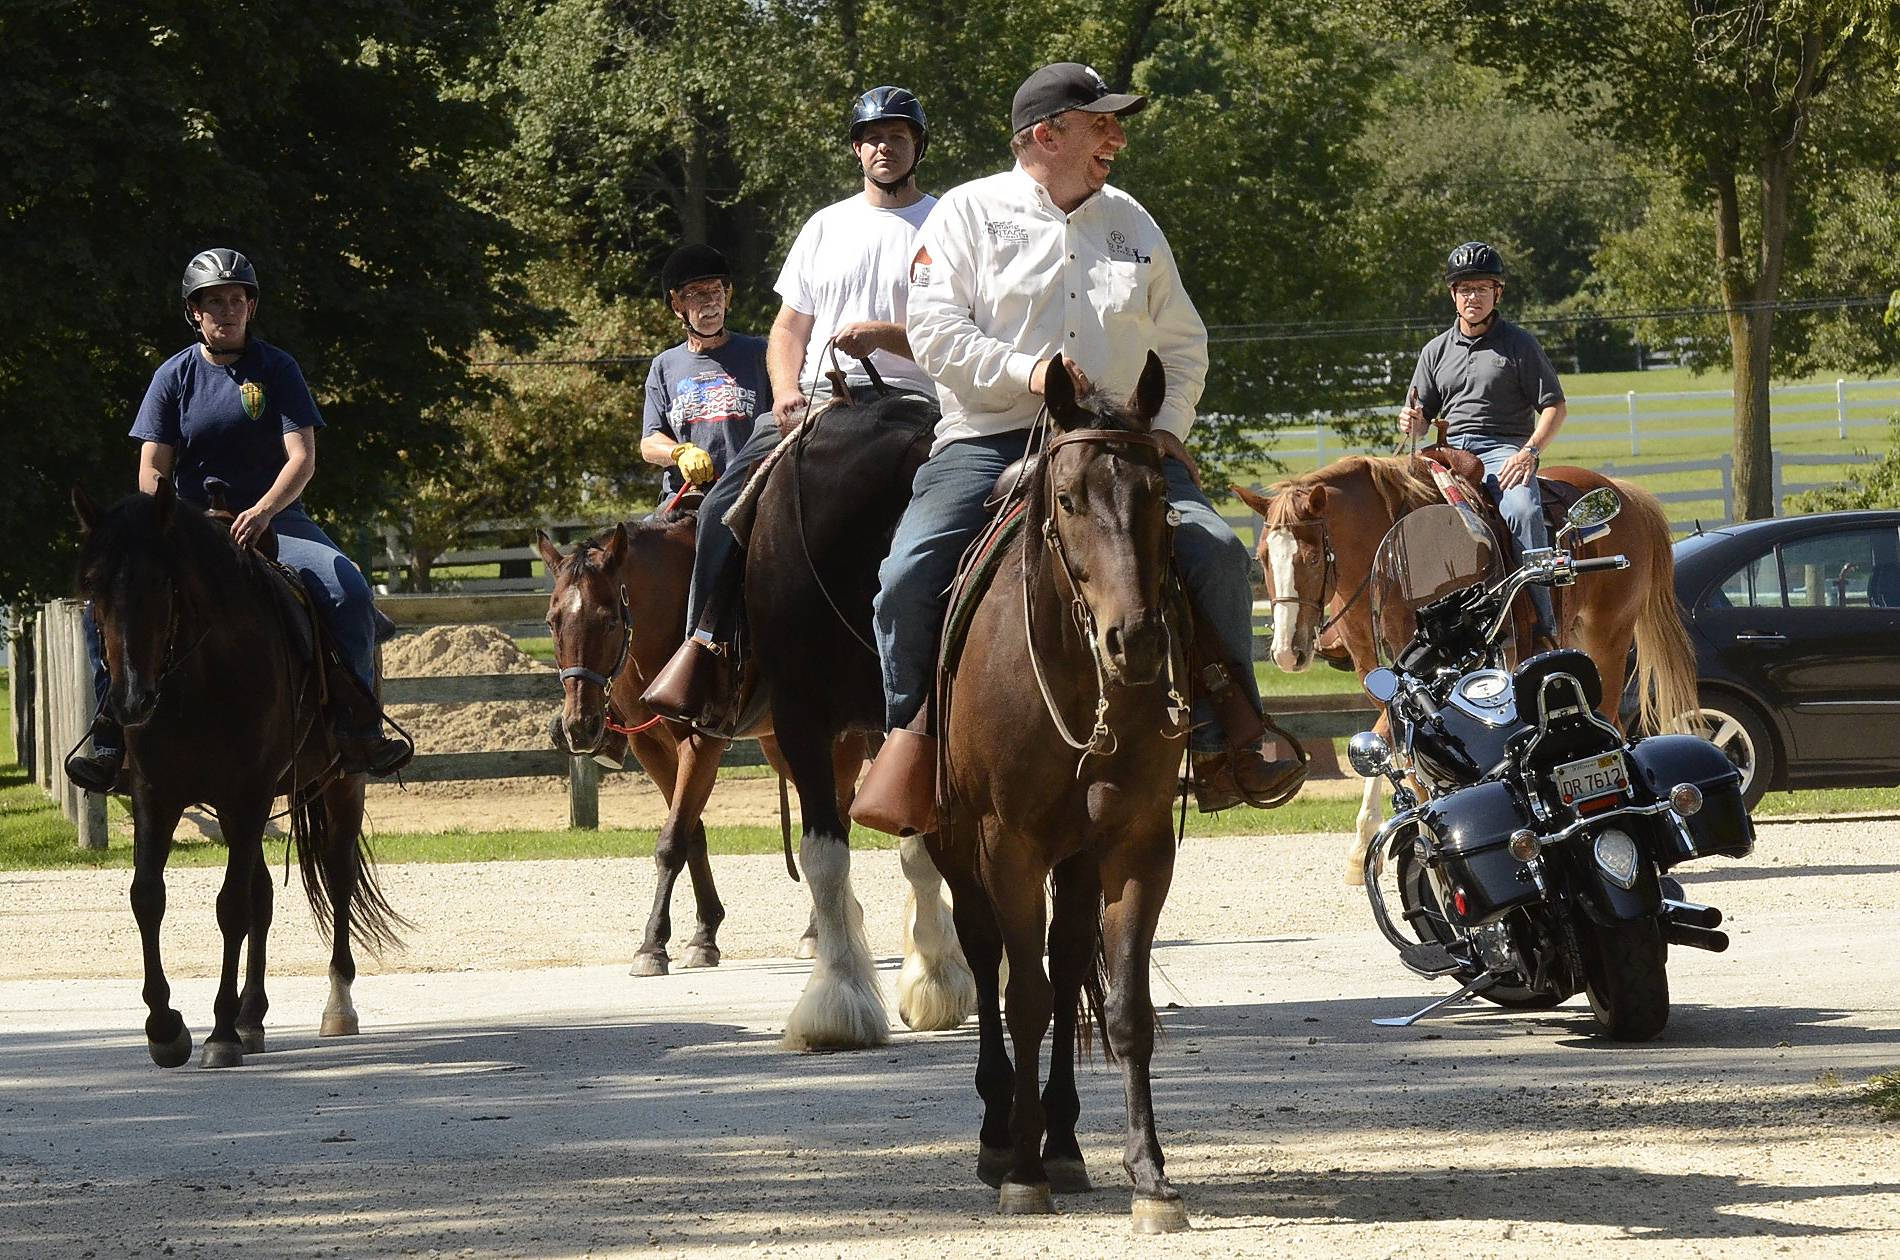 "Patrick ""Paddy"" McKevitt leads a group of riders out on a trail Monday at the Barrington Hills Riding Center in Barrington Hills. McKevitt is director of operations for BraveHearts, which runs the country's largest equine therapy program for military veterans."